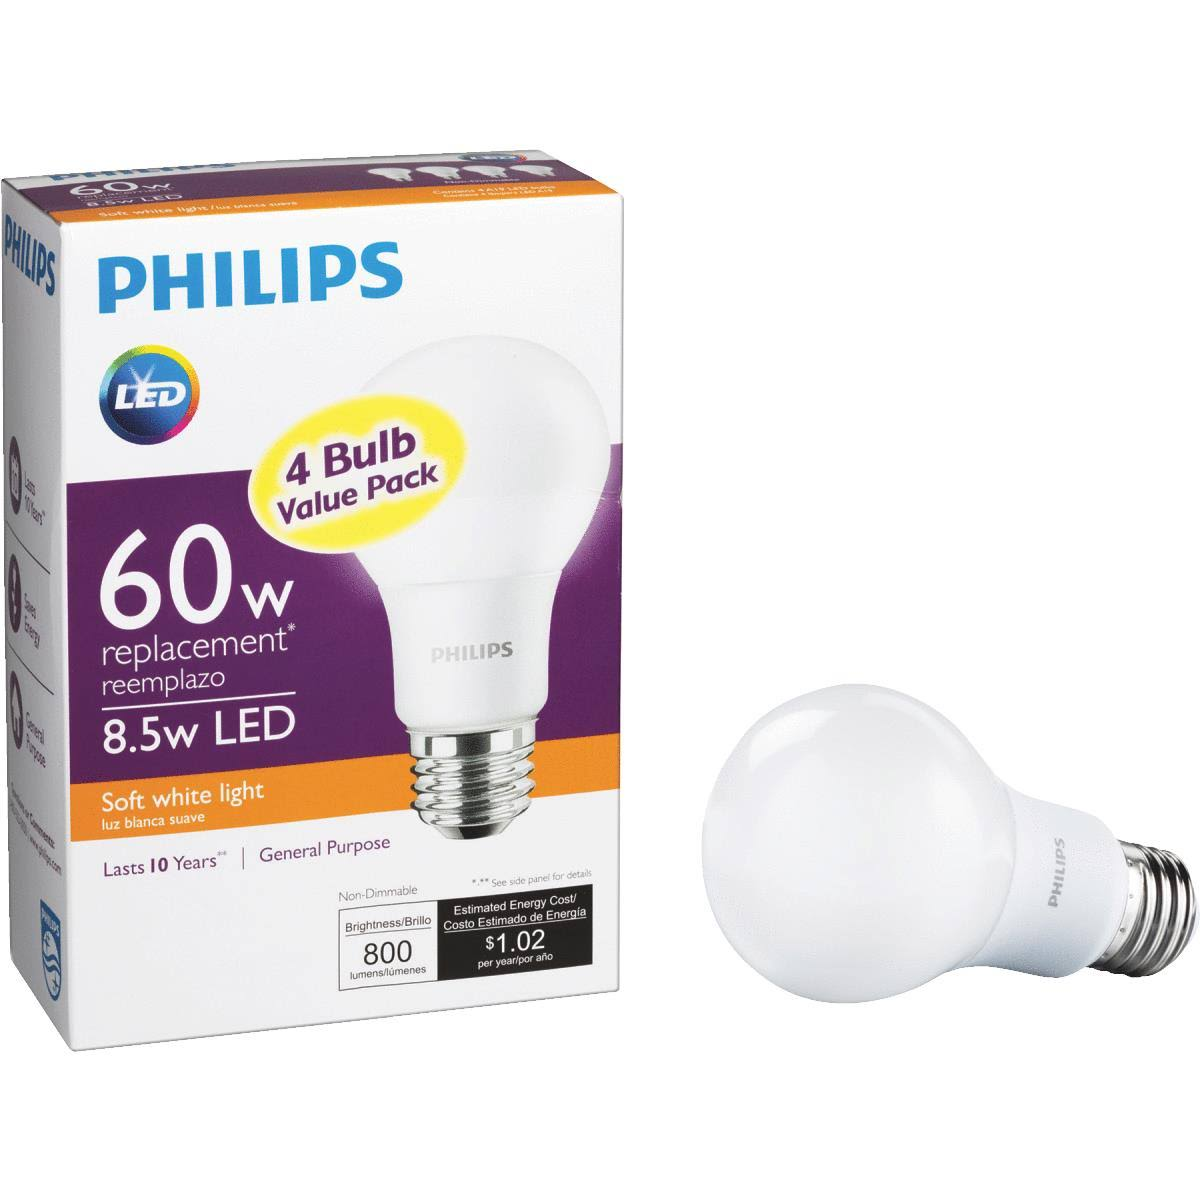 Philips A19 LED Light Bulb - 60W Equivalent, Soft White